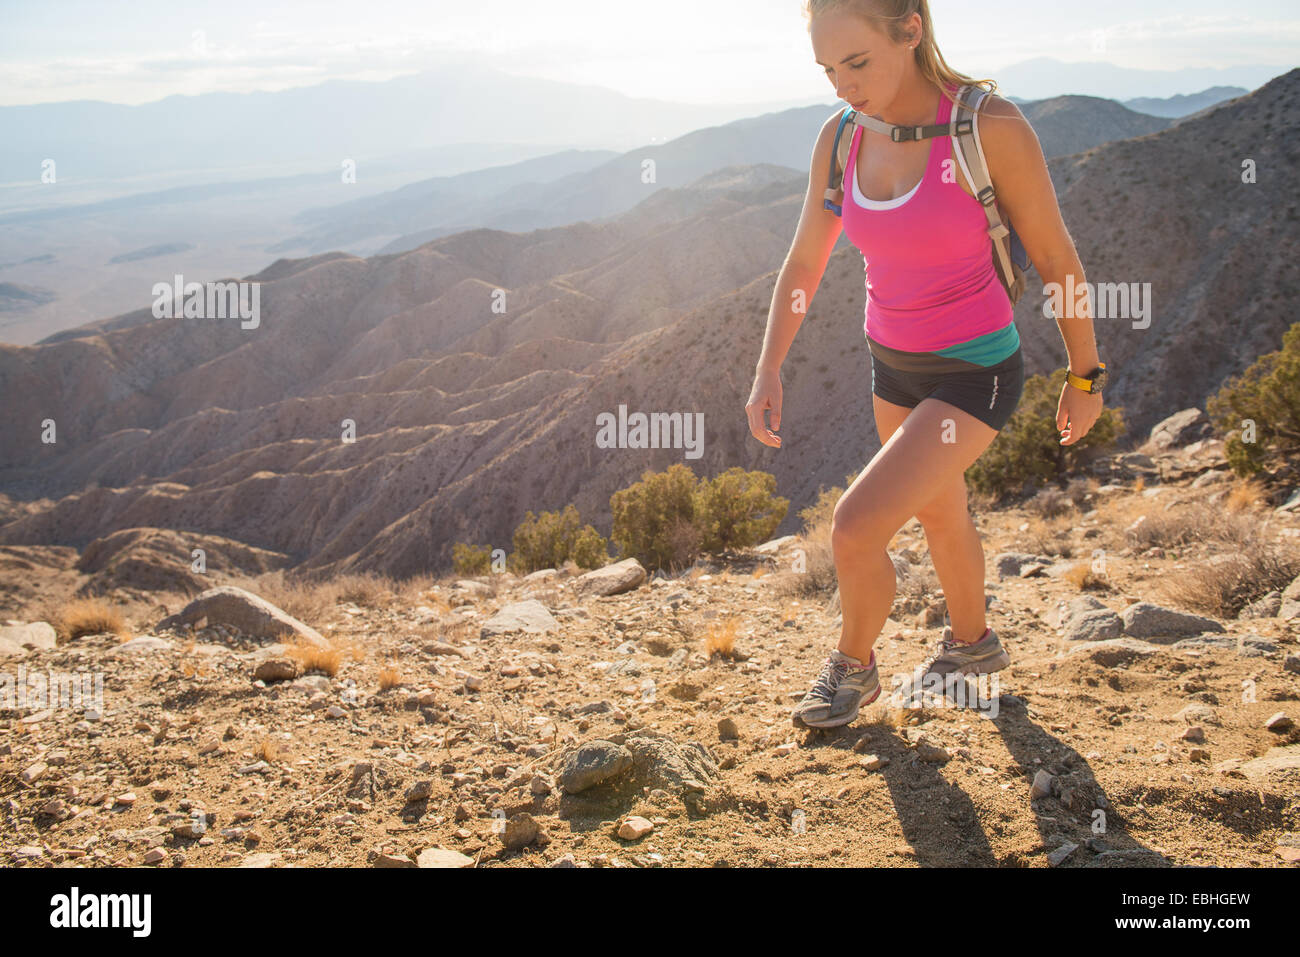 Frau Wandern, Joshua Tree Nationalpark, Kalifornien, USA Stockbild